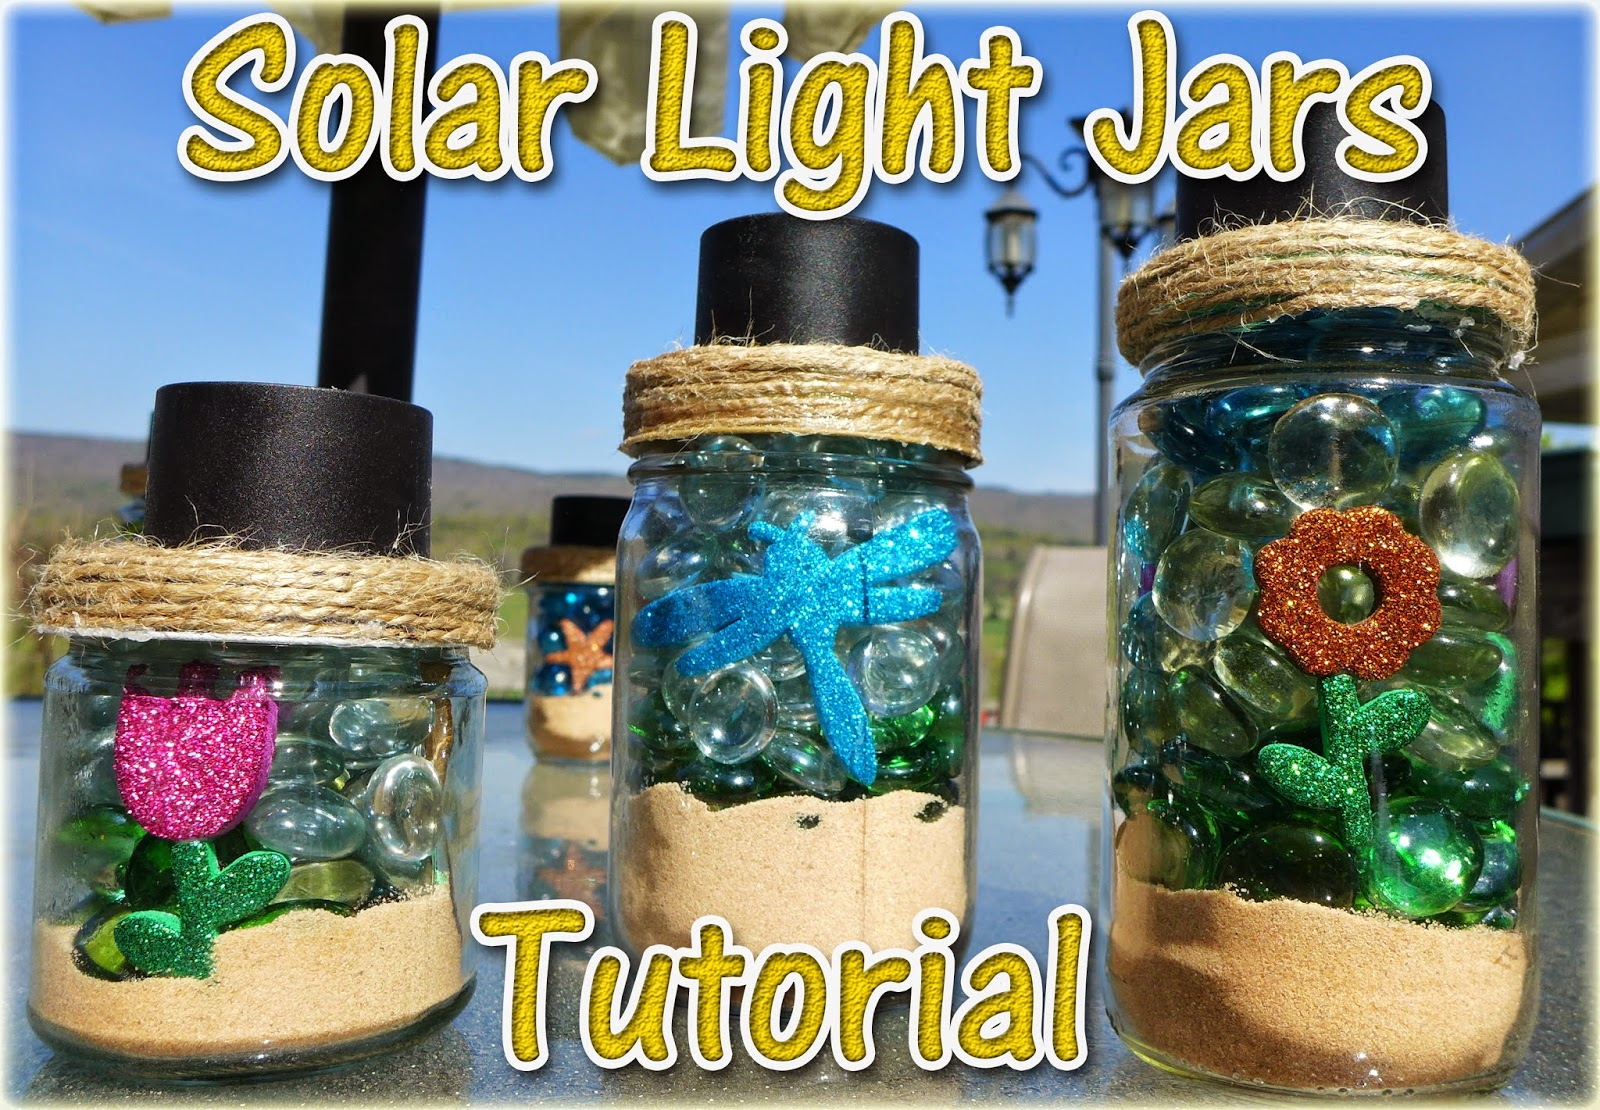 Easymeworld diy solar light jars beach theme for Where to buy solar lights for crafts